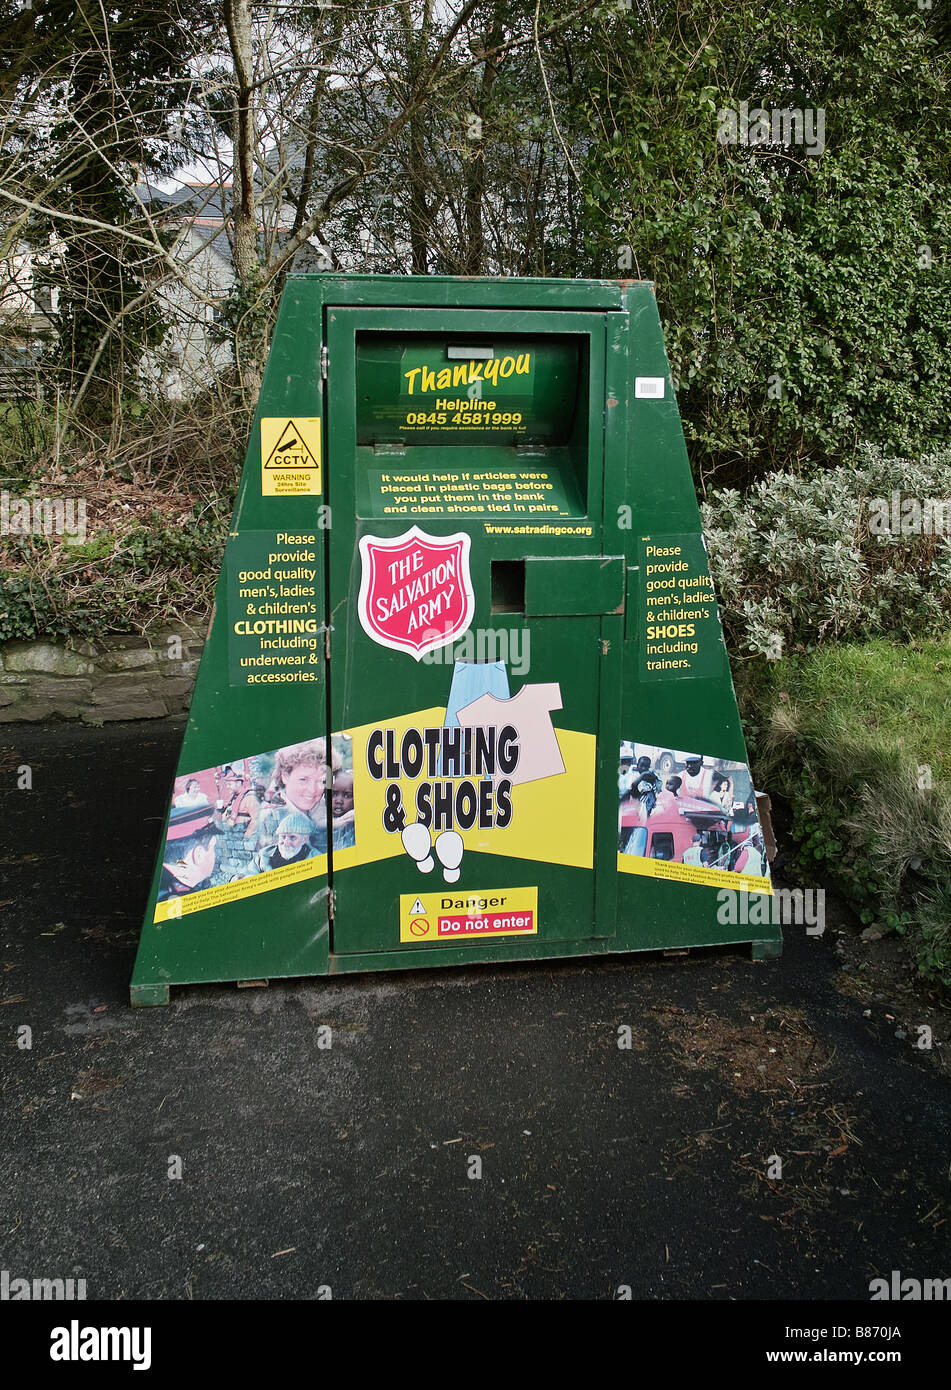 a 'salvation army' used clothing collection bin,in cornwall,uk - Stock Image